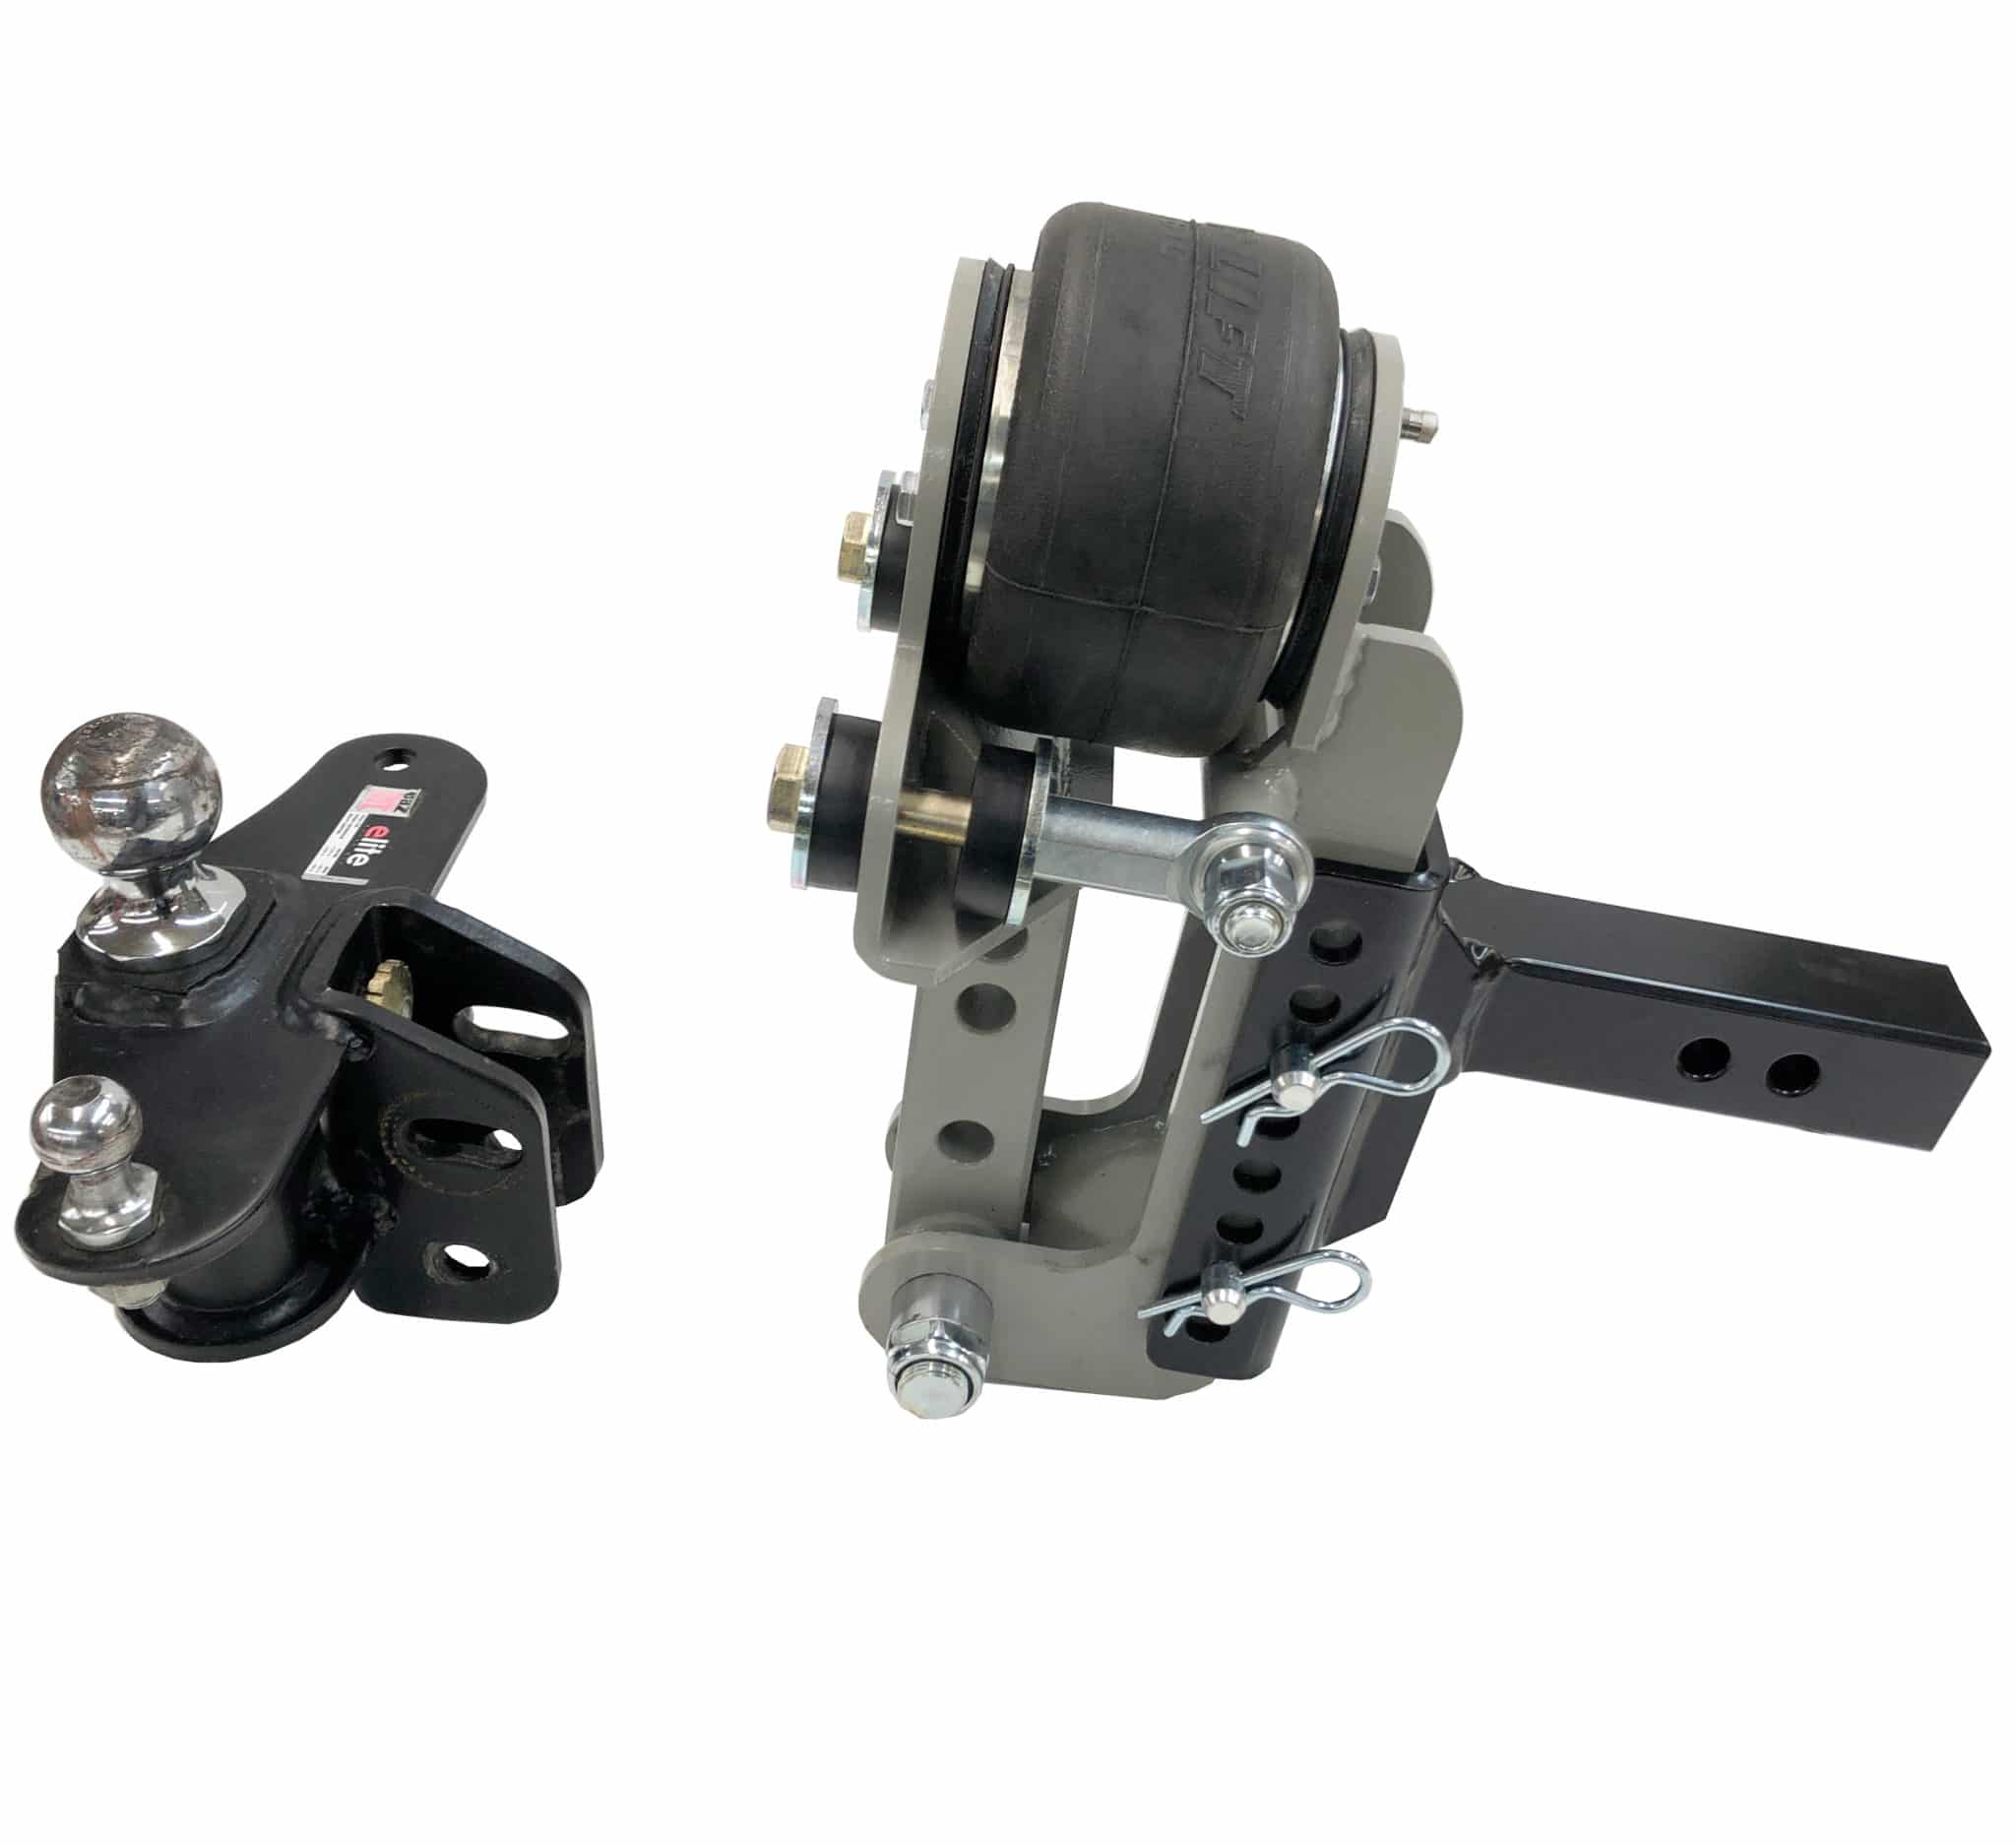 Shocker Air Equalizer Bolts to Existing W-D Hitch Head